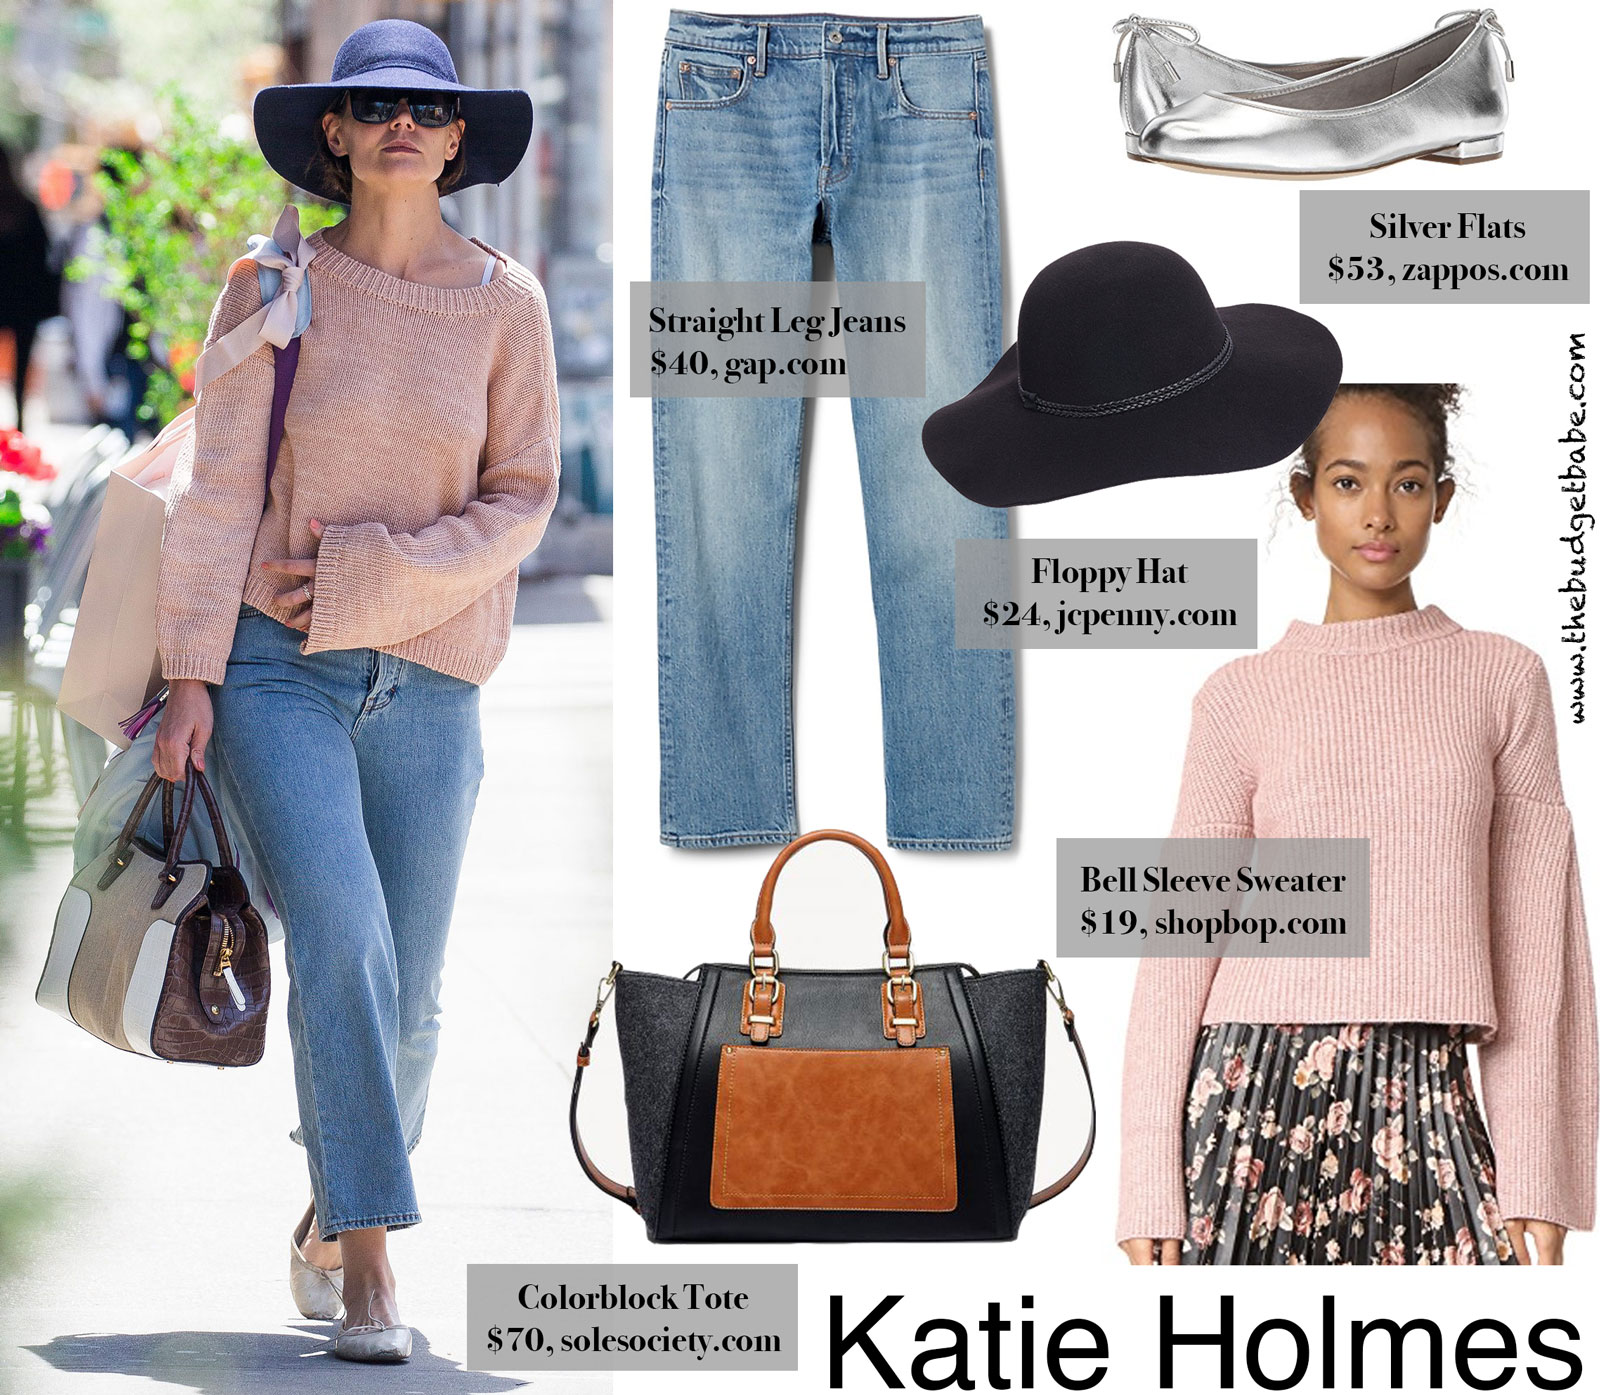 Katie Holmes Floppy Hat and Bell Sleeve Sweater Look for Less